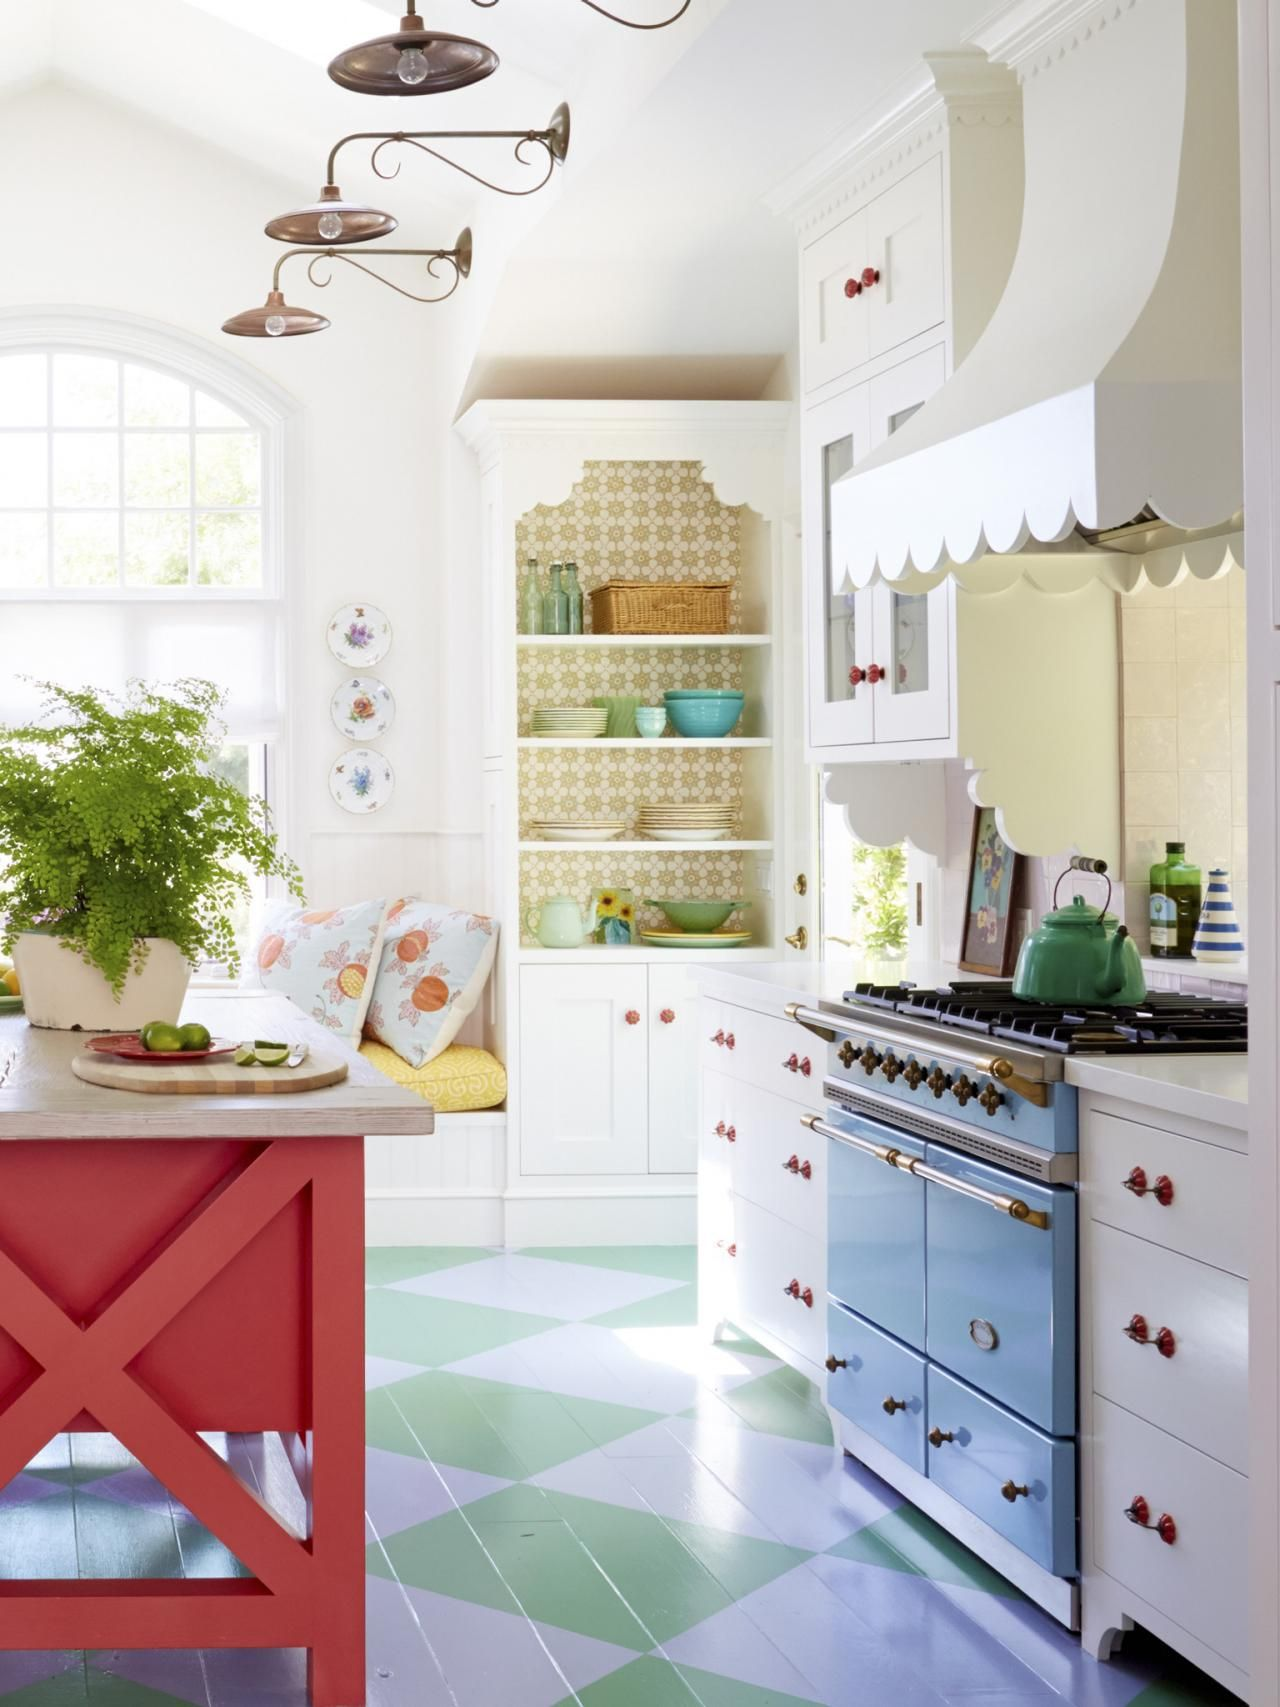 eclectic and colorful decorating ideas interior design styles and color schemes for home on kitchen makeover ideas id=25702